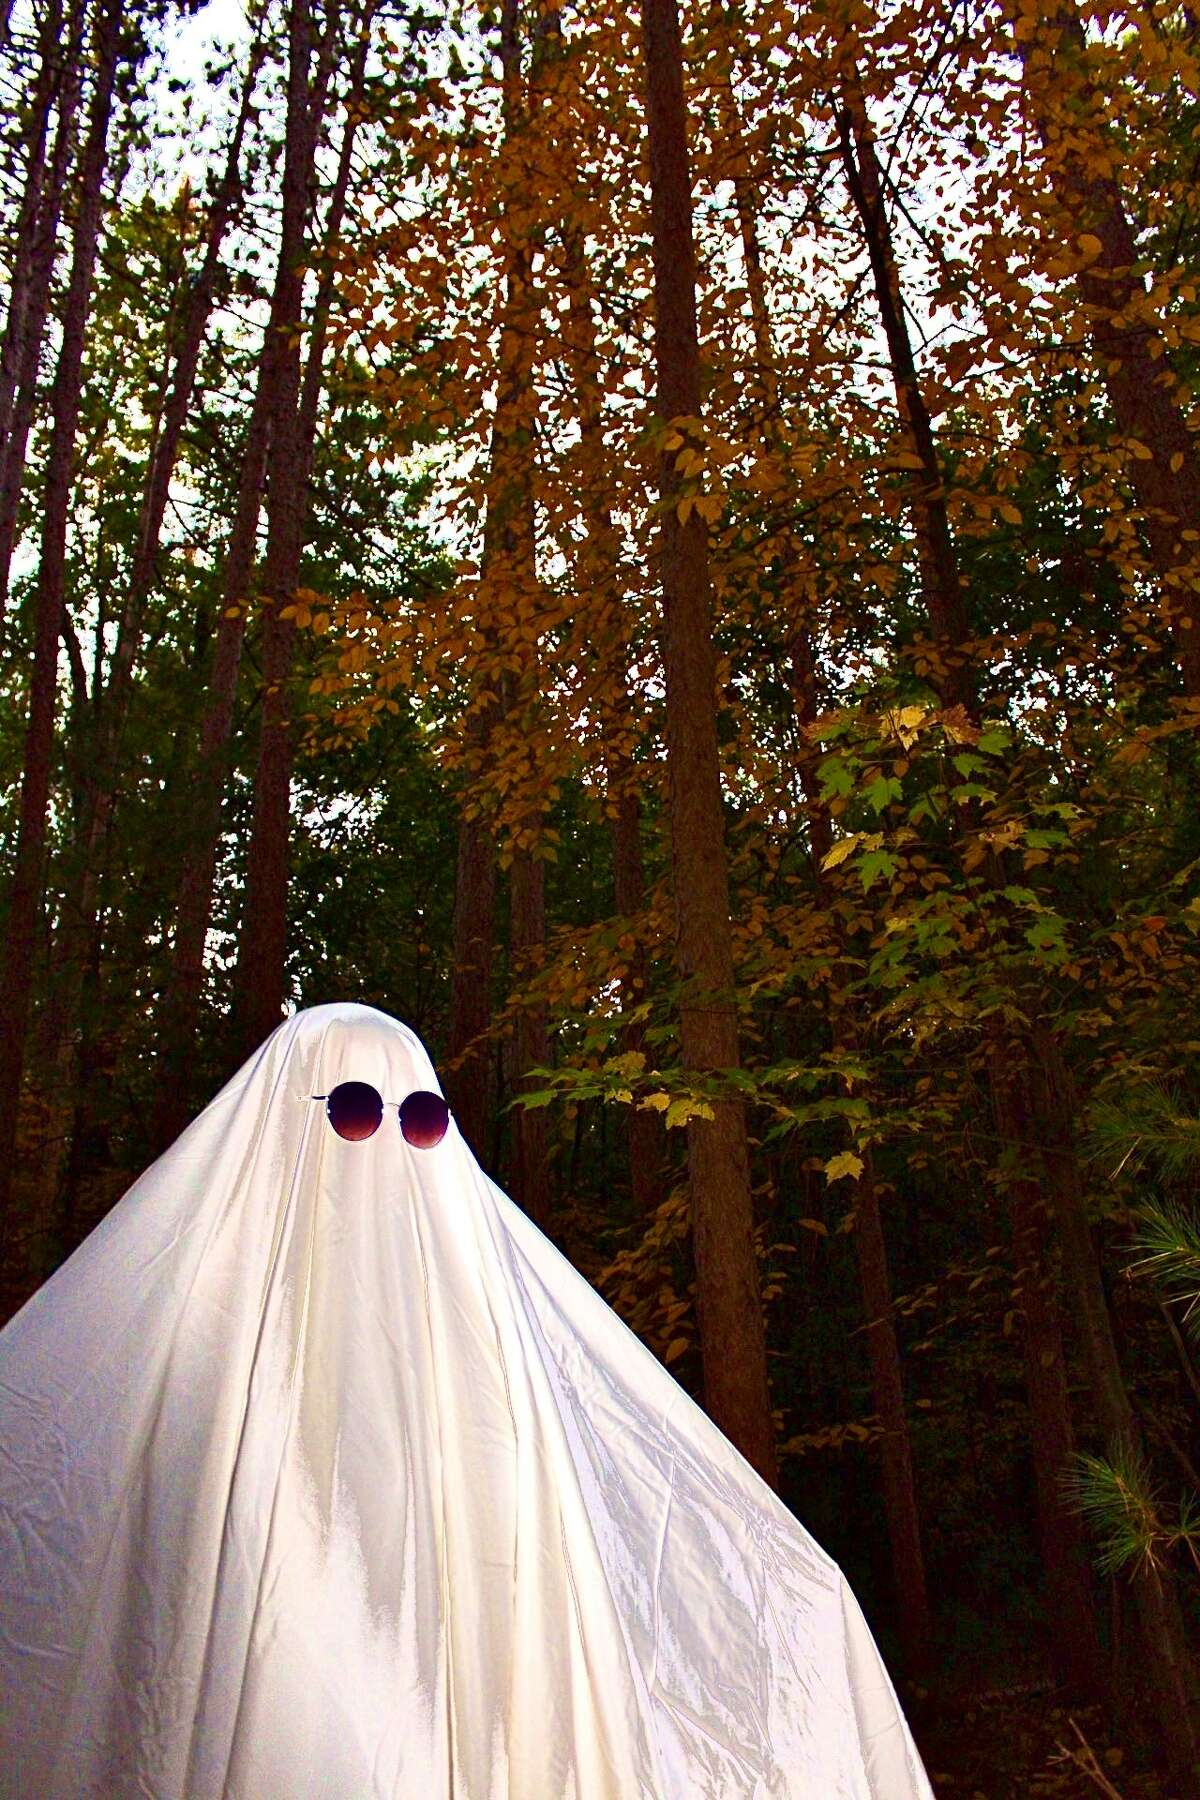 A spooky little ghost out in the woods enjoys some nice fall weather this month in a photo from Emily Bailey of Burnt Hills.